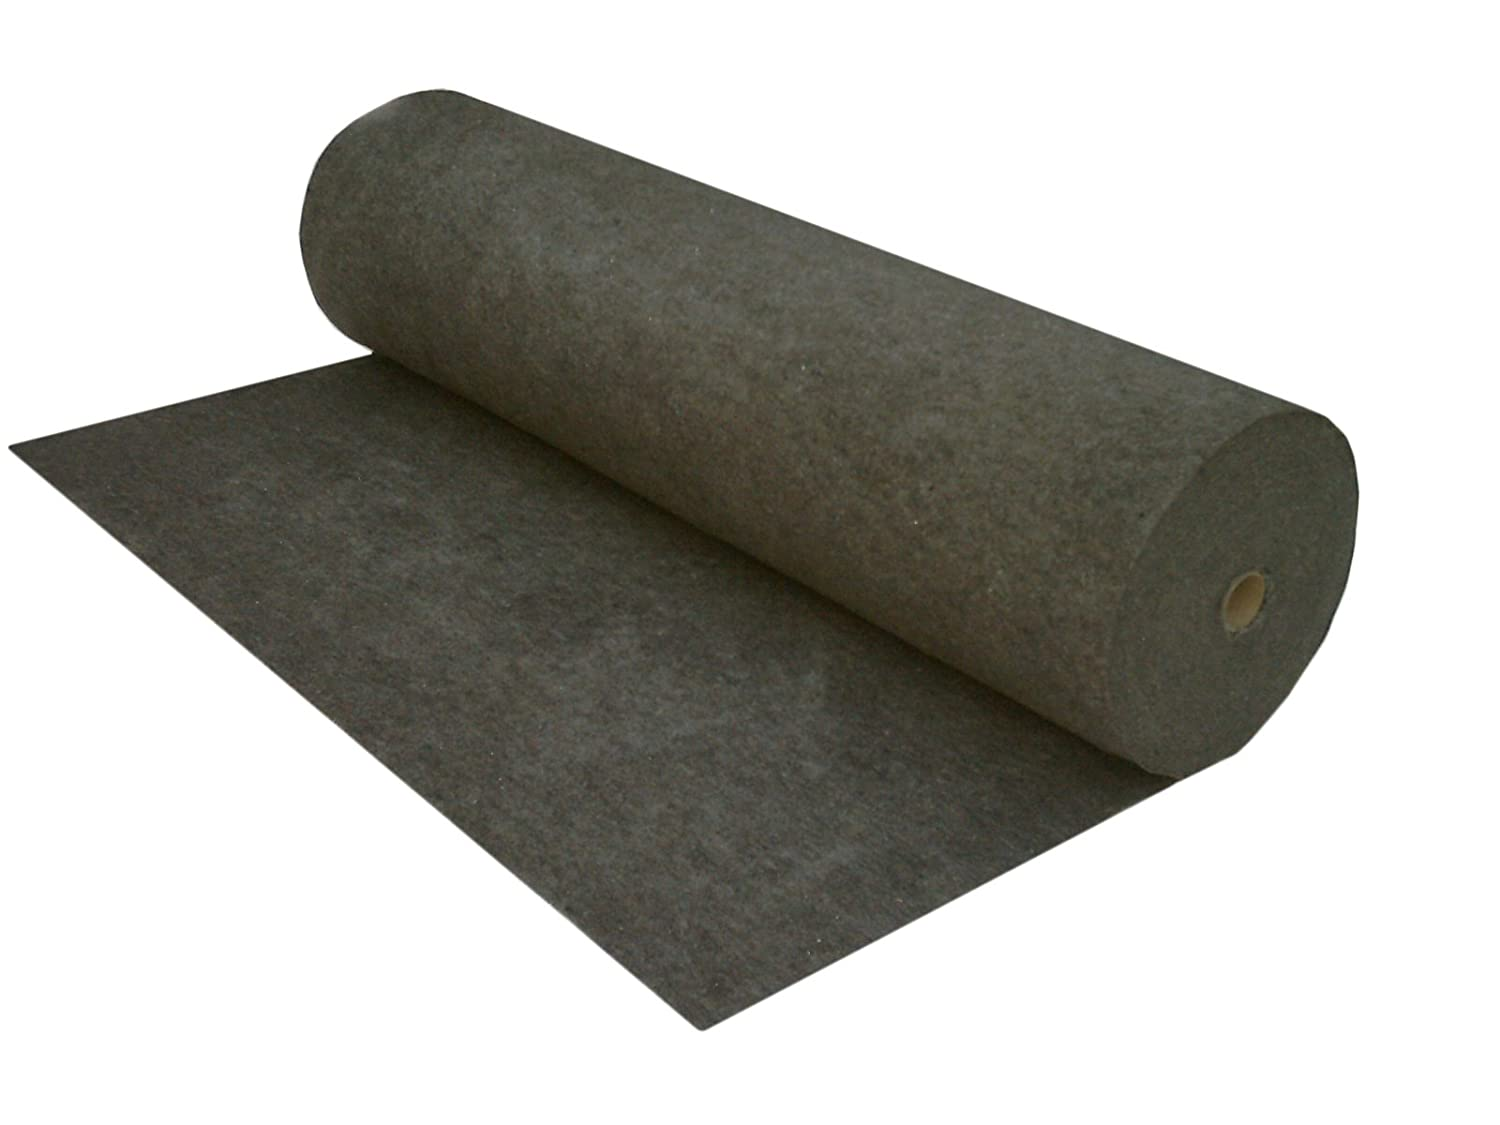 36m² pond fleece 300g, pond protection fleece for pond foil Aquagart